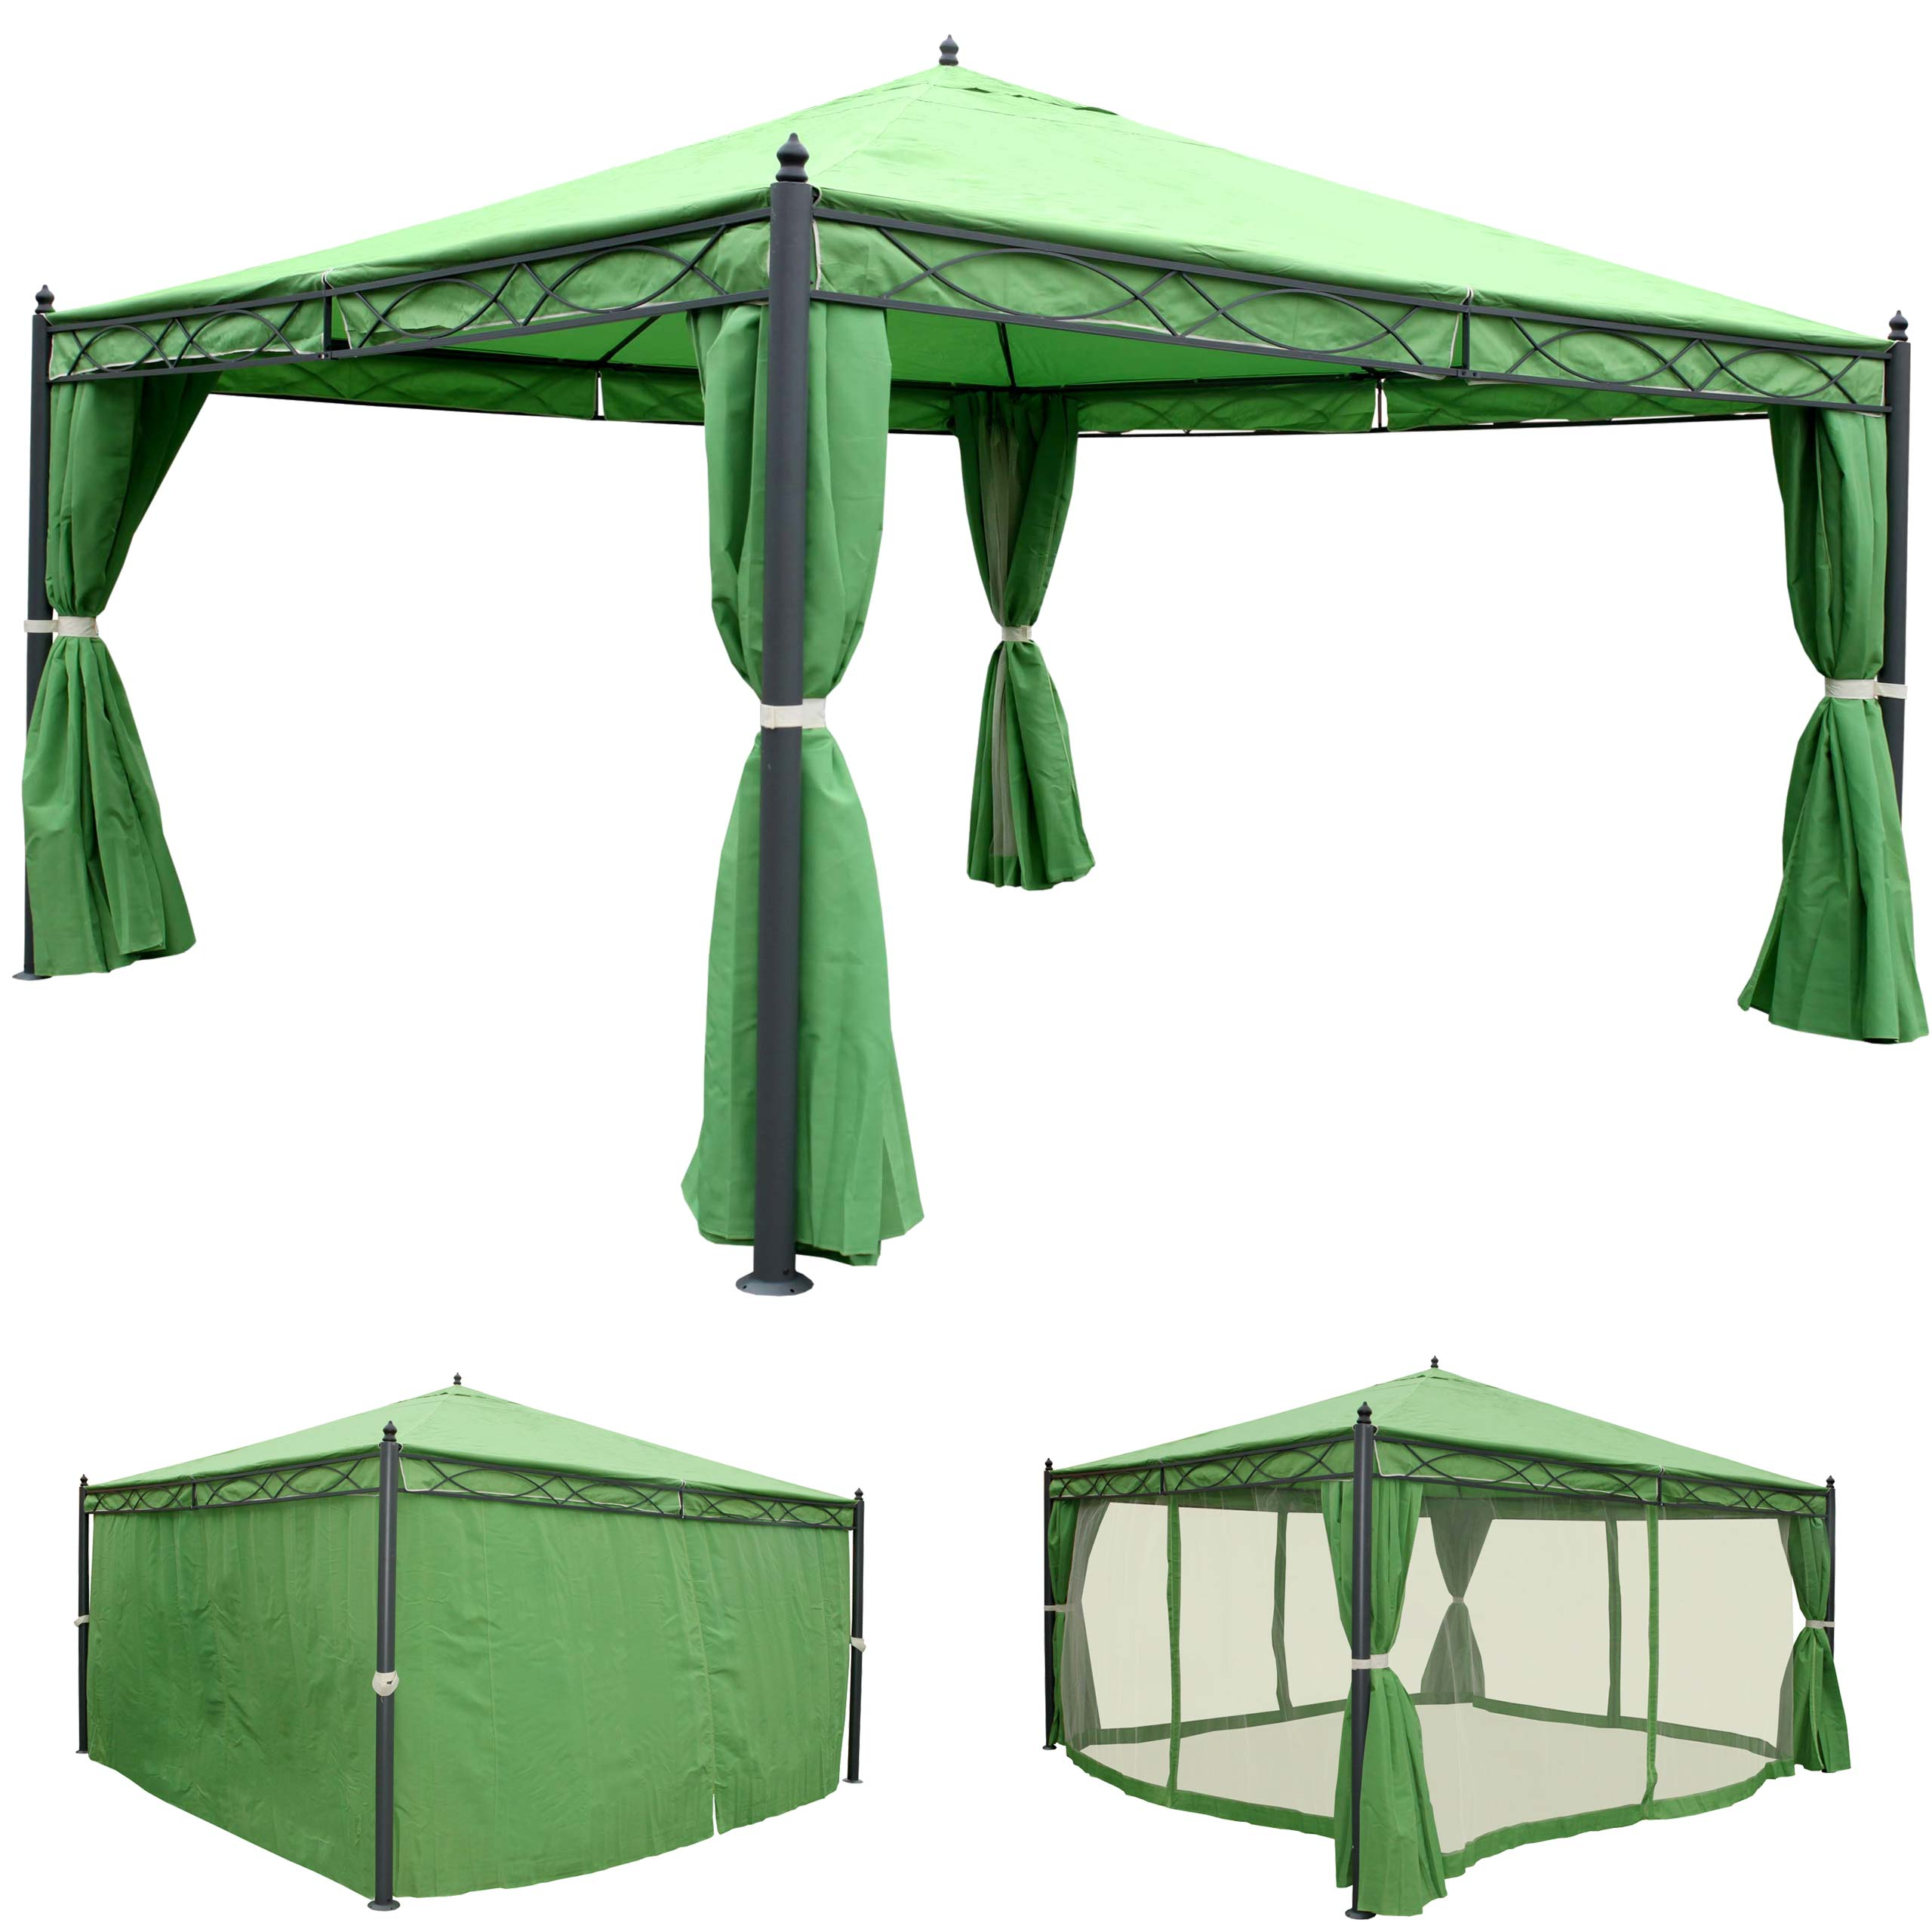 pergola cadiz garten pavillon 7cm gestell mit seitenwand moskitonetz ebay. Black Bedroom Furniture Sets. Home Design Ideas